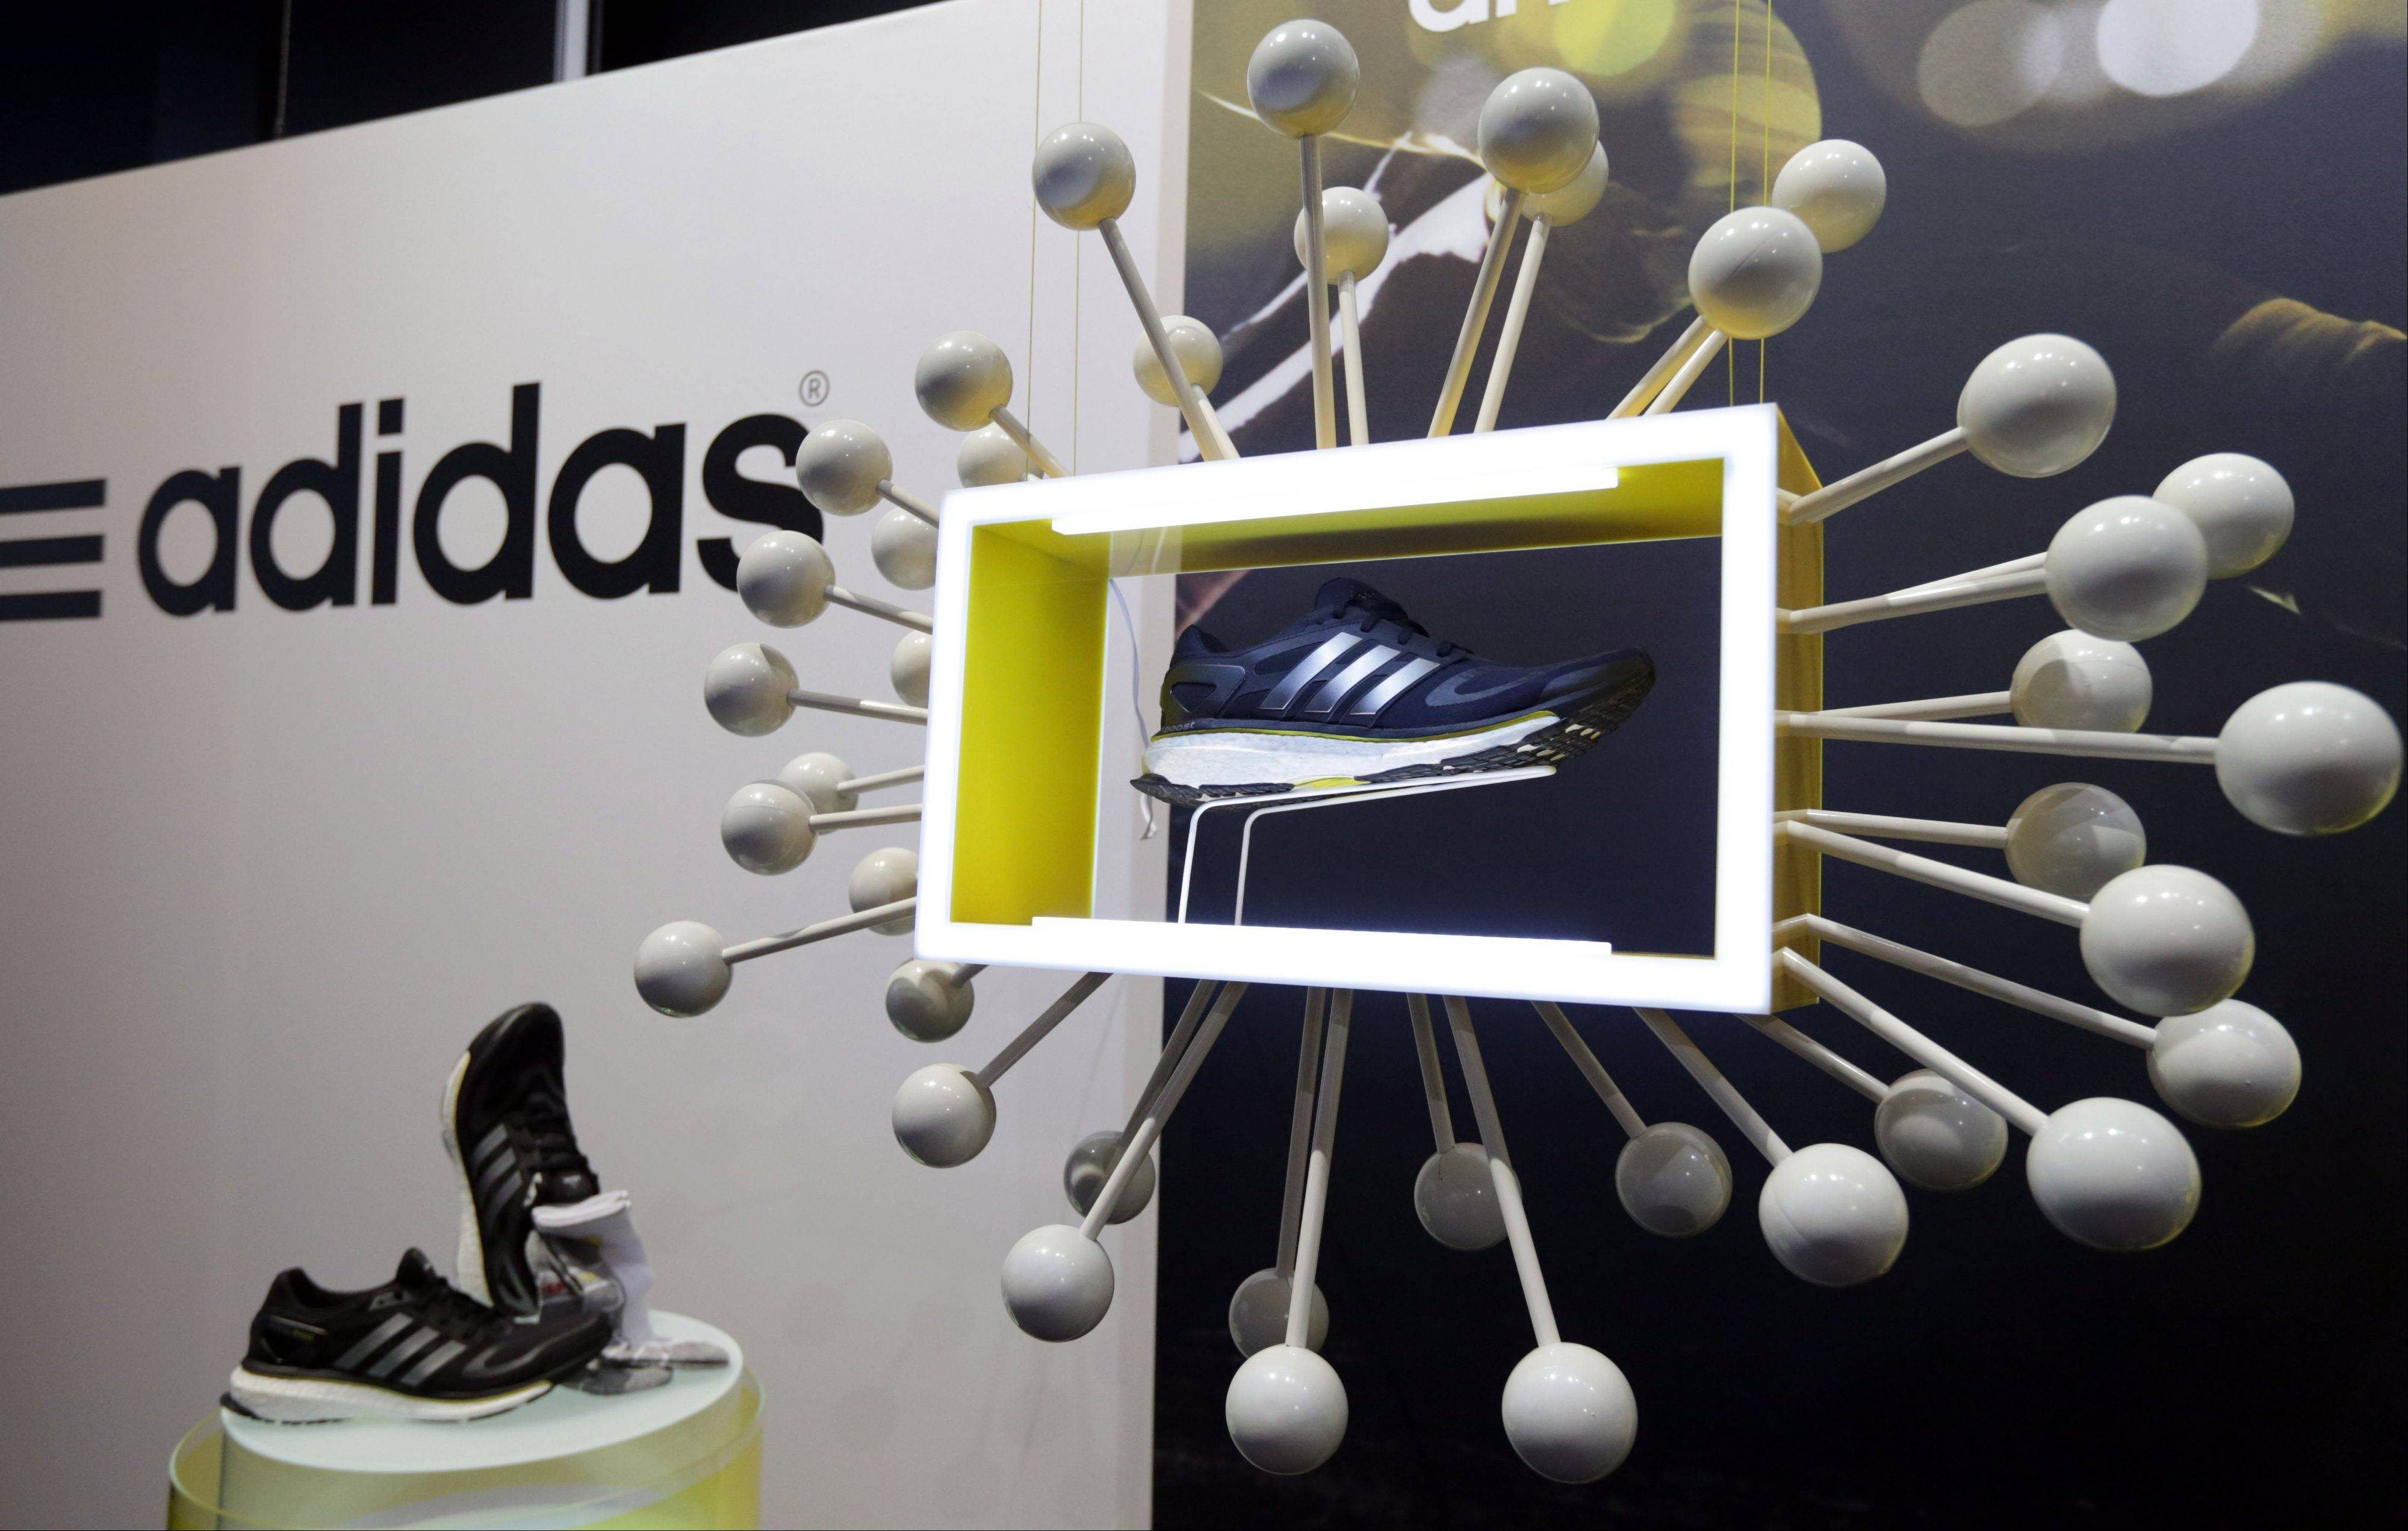 The new Adidas shoe �boost� is presented during the annual balance news conference in Herzogenaurach, southern Germany, Thursday.